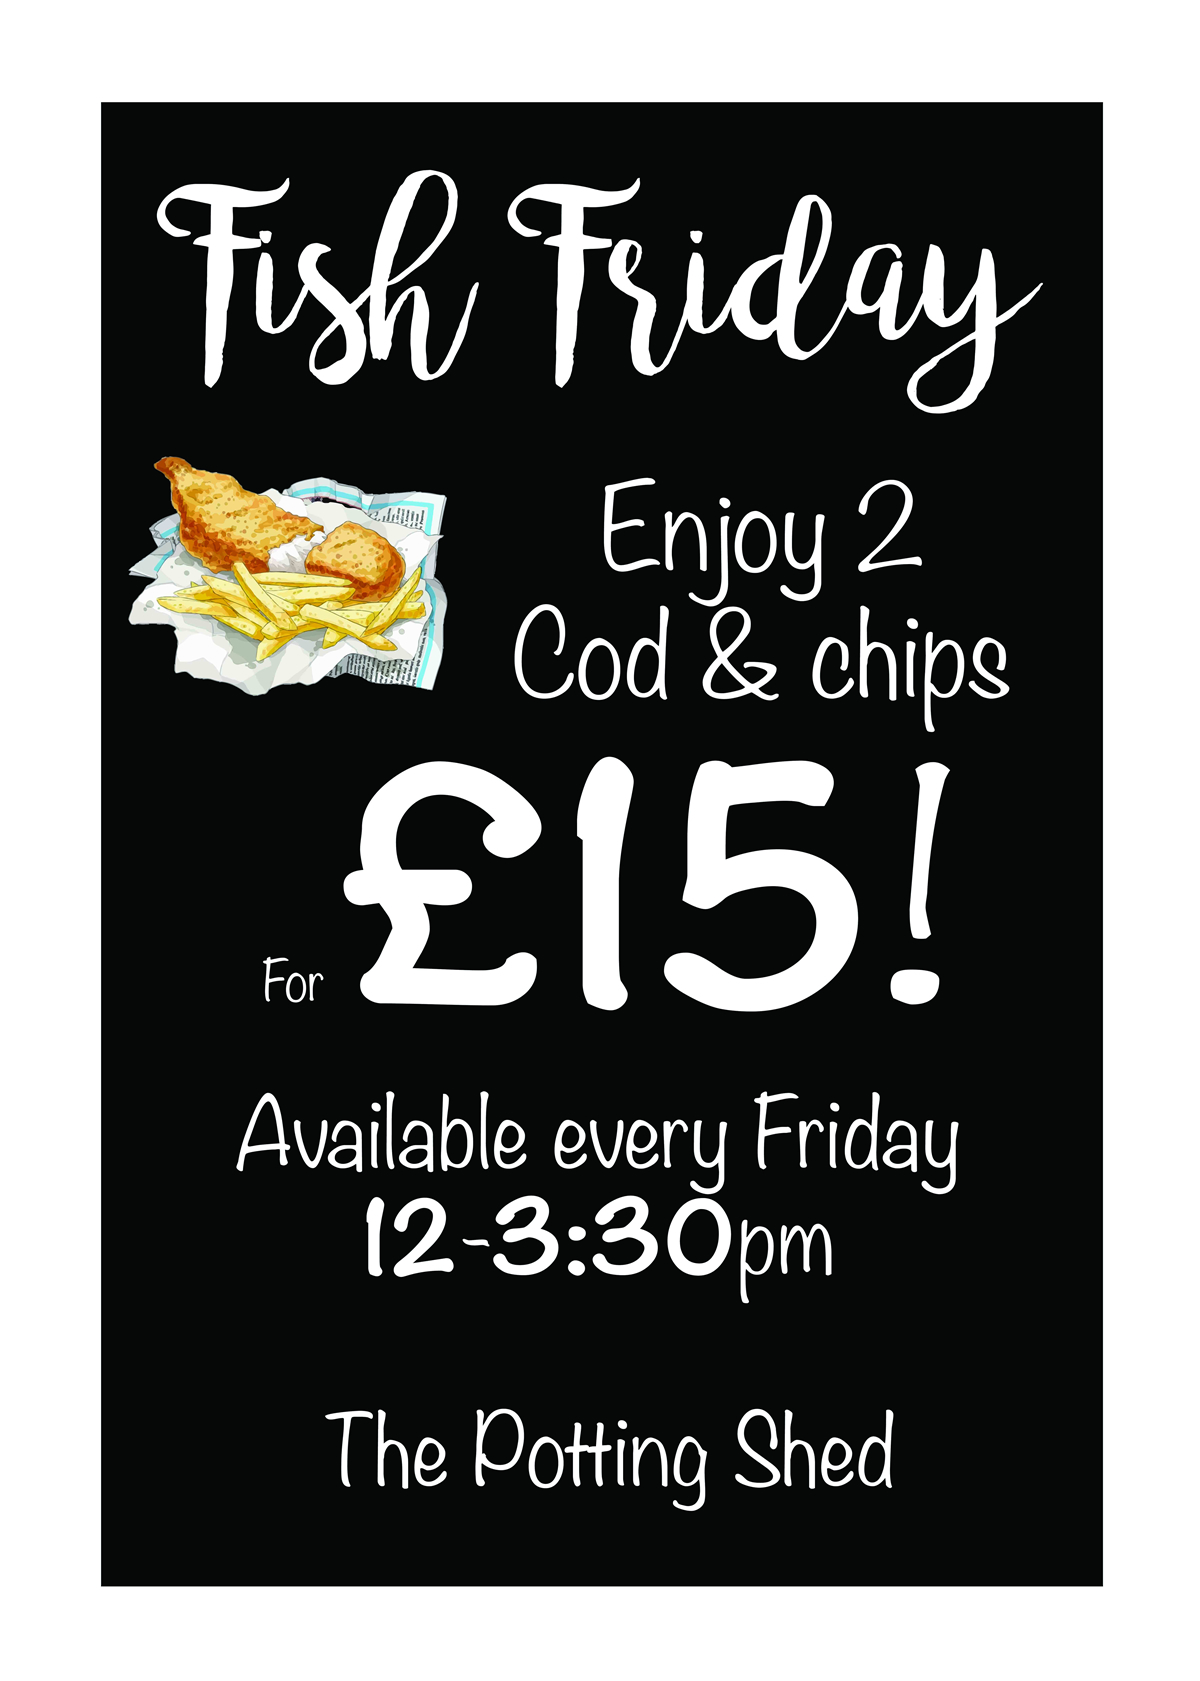 Fish Friday Offer